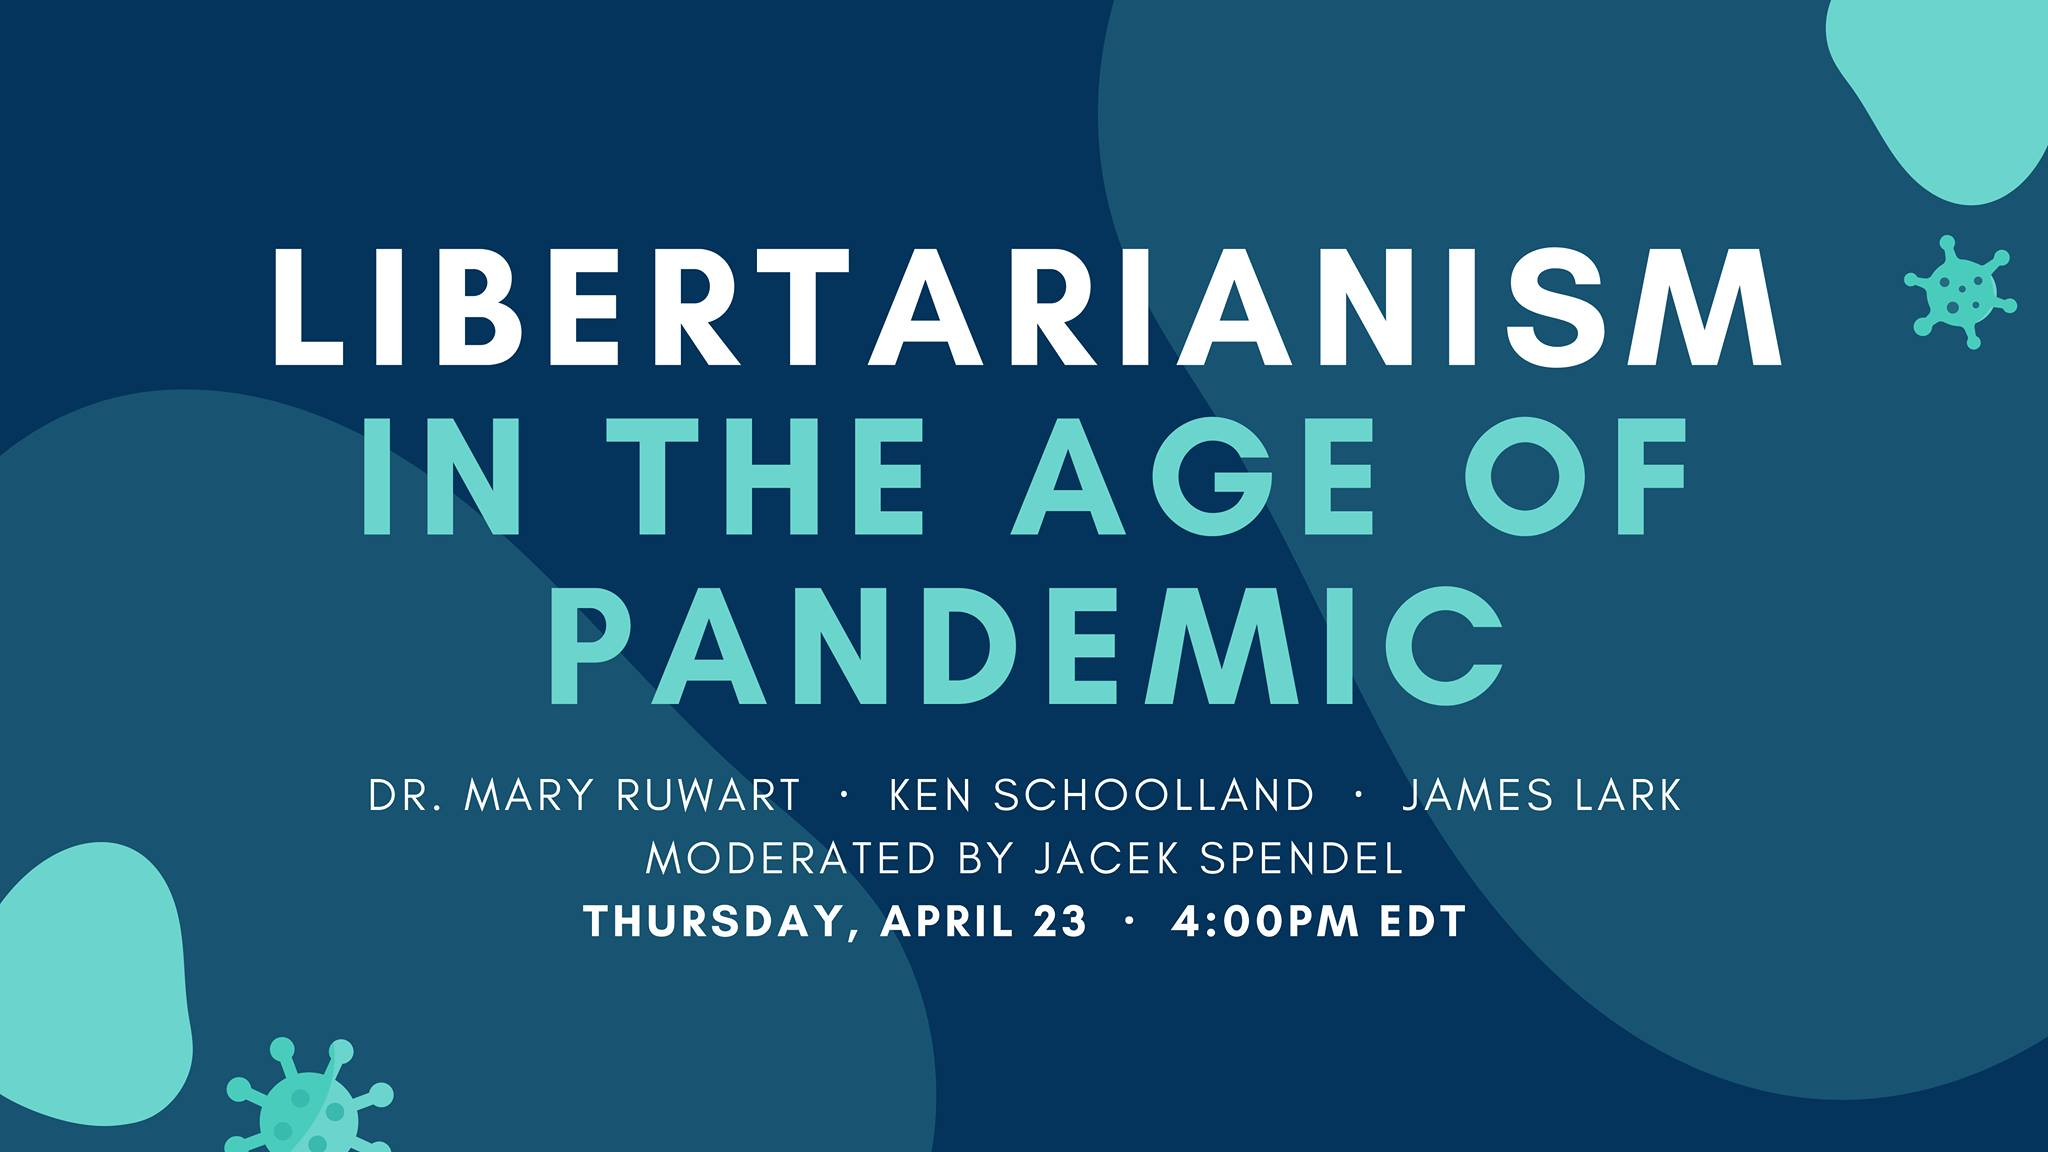 Watch now: Libertarianism in the age of pandemic